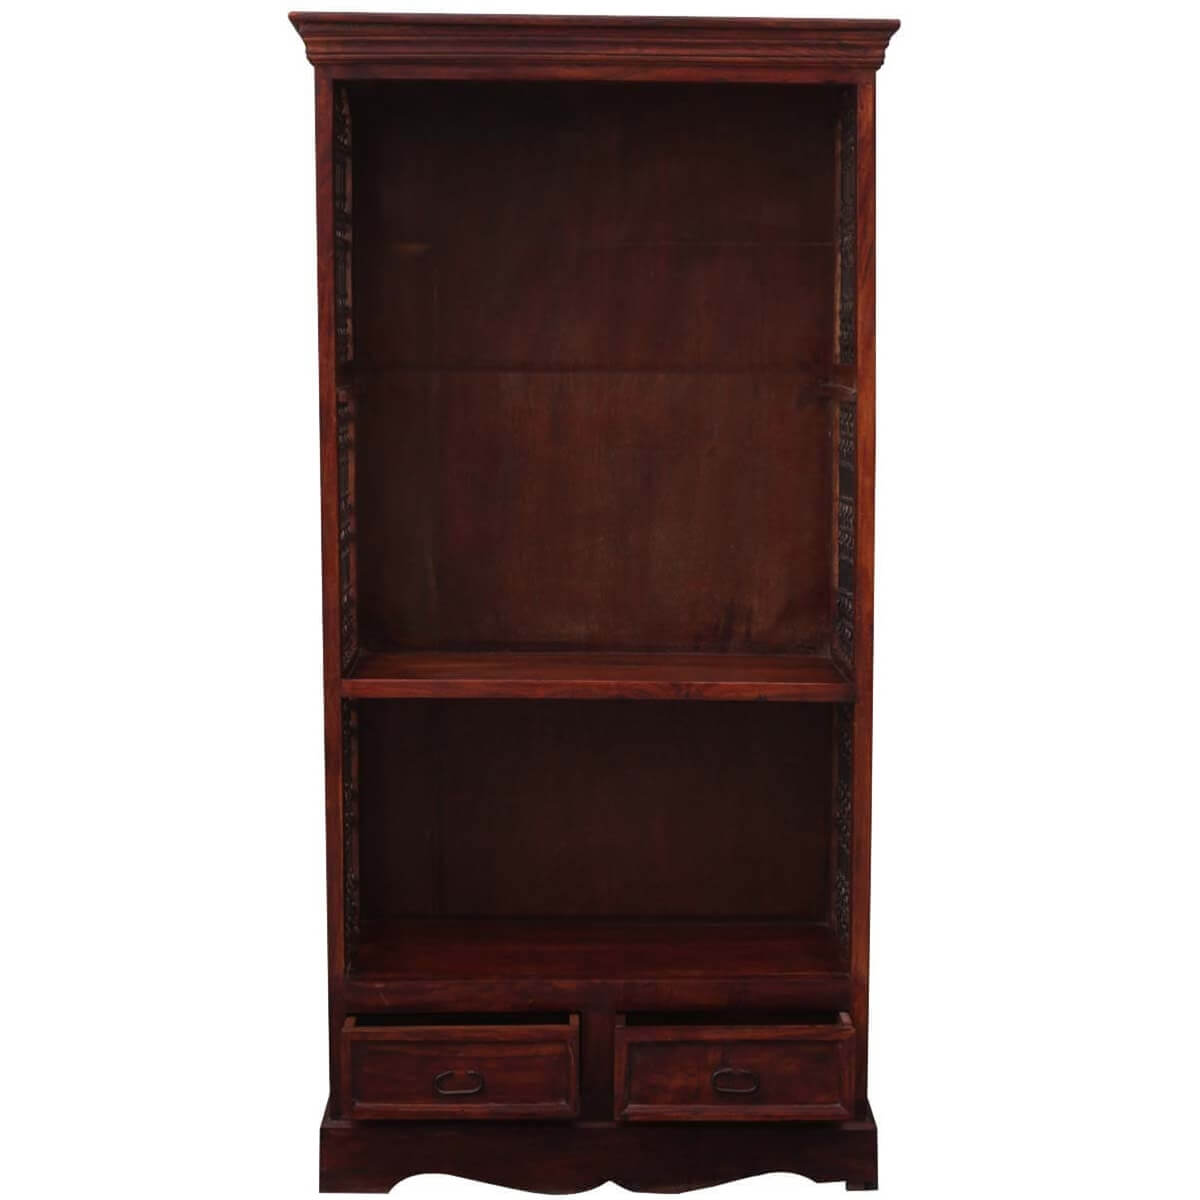 Wonderful image of  71 Tall Solid Wood & Wrought Iron 3 Shelf Display Single Bookcase with #B48317 color and 1200x1200 pixels